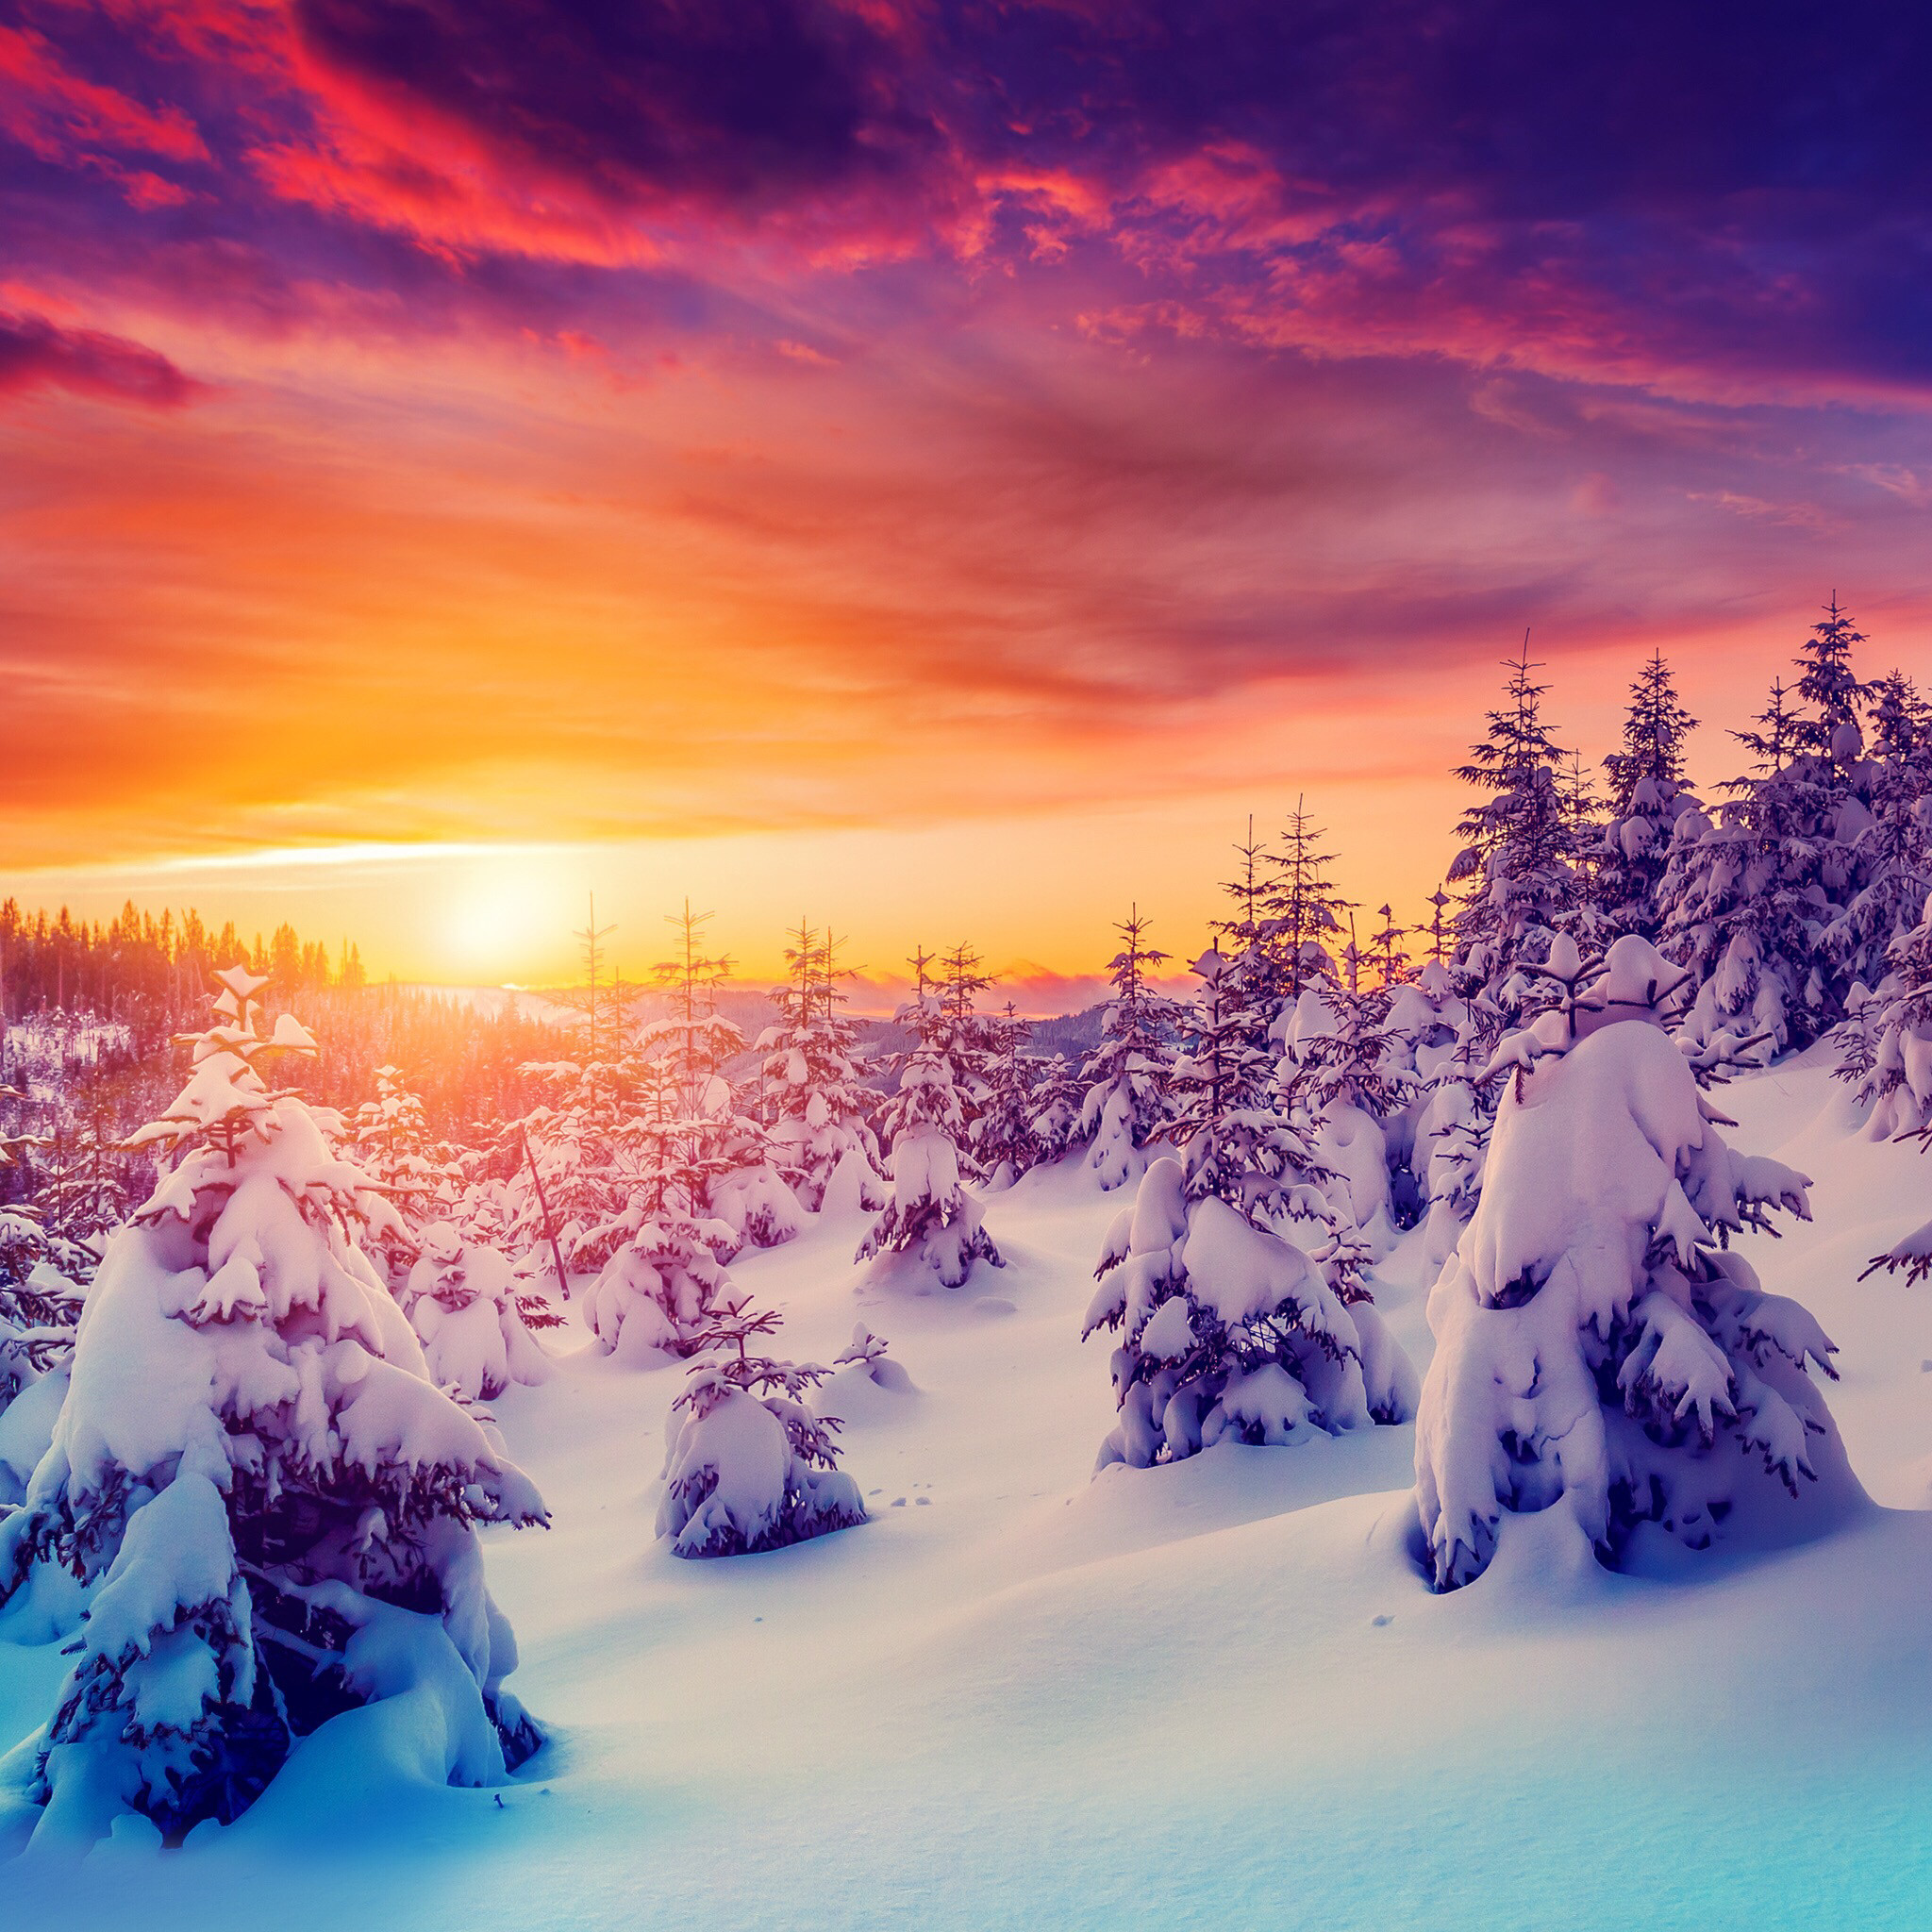 iPad mini Retina, Sunset, Sundown, Sun, Snow, Forest, Frost –